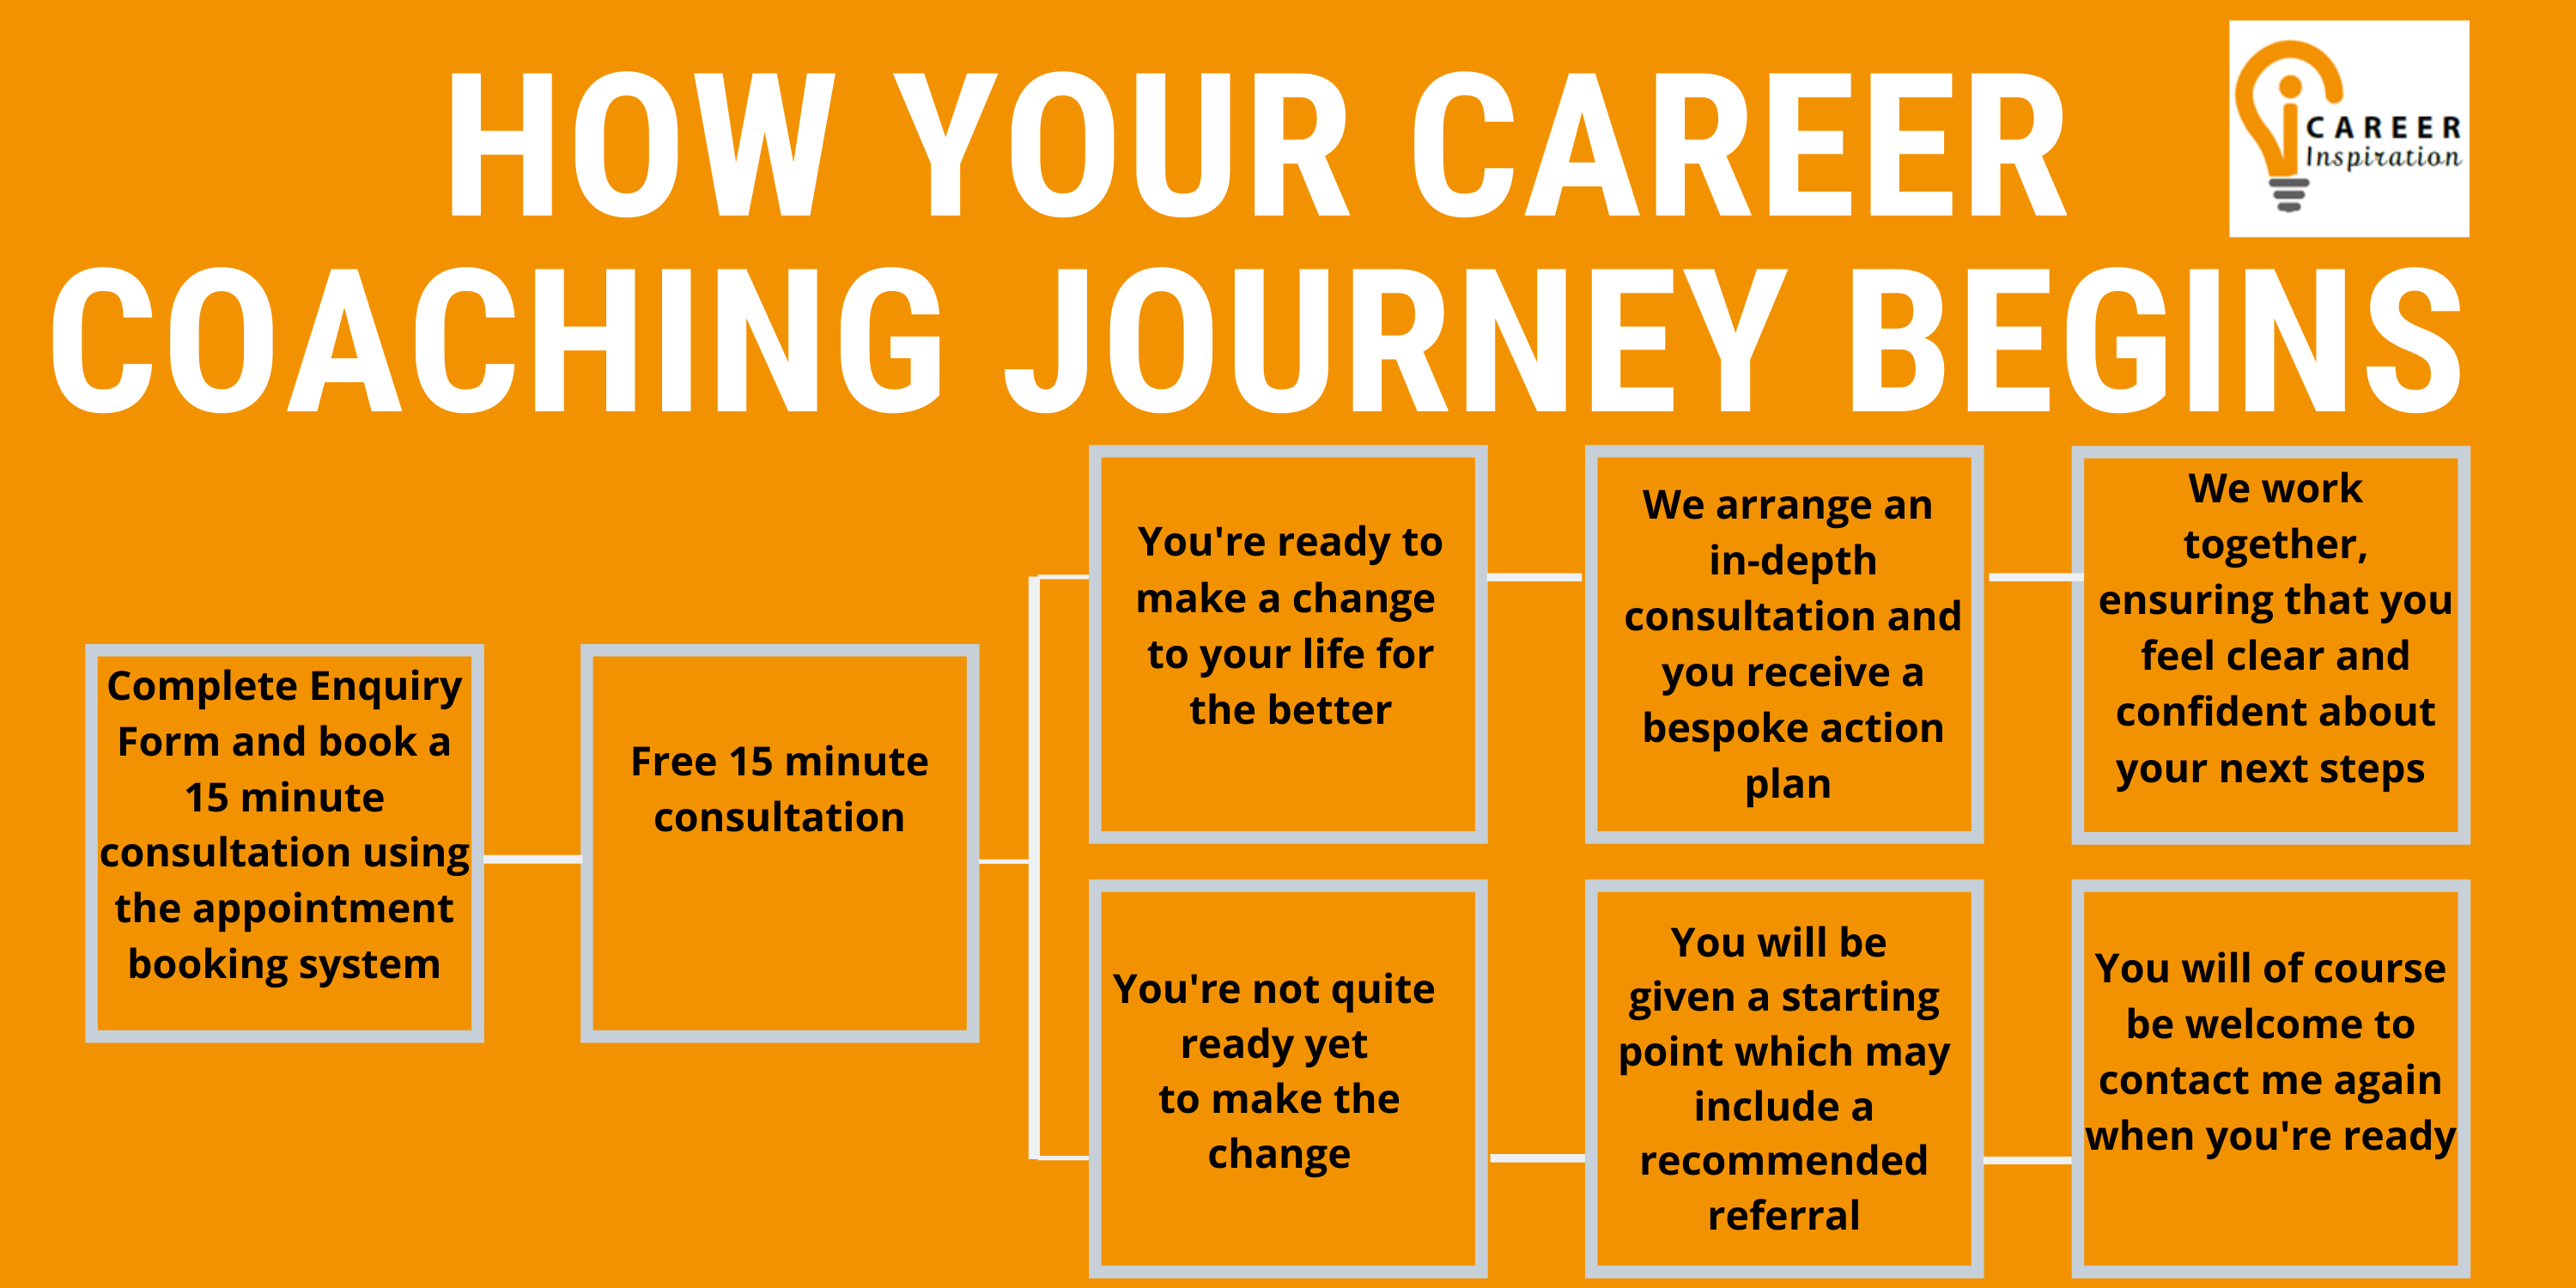 How your career coaching journey begins